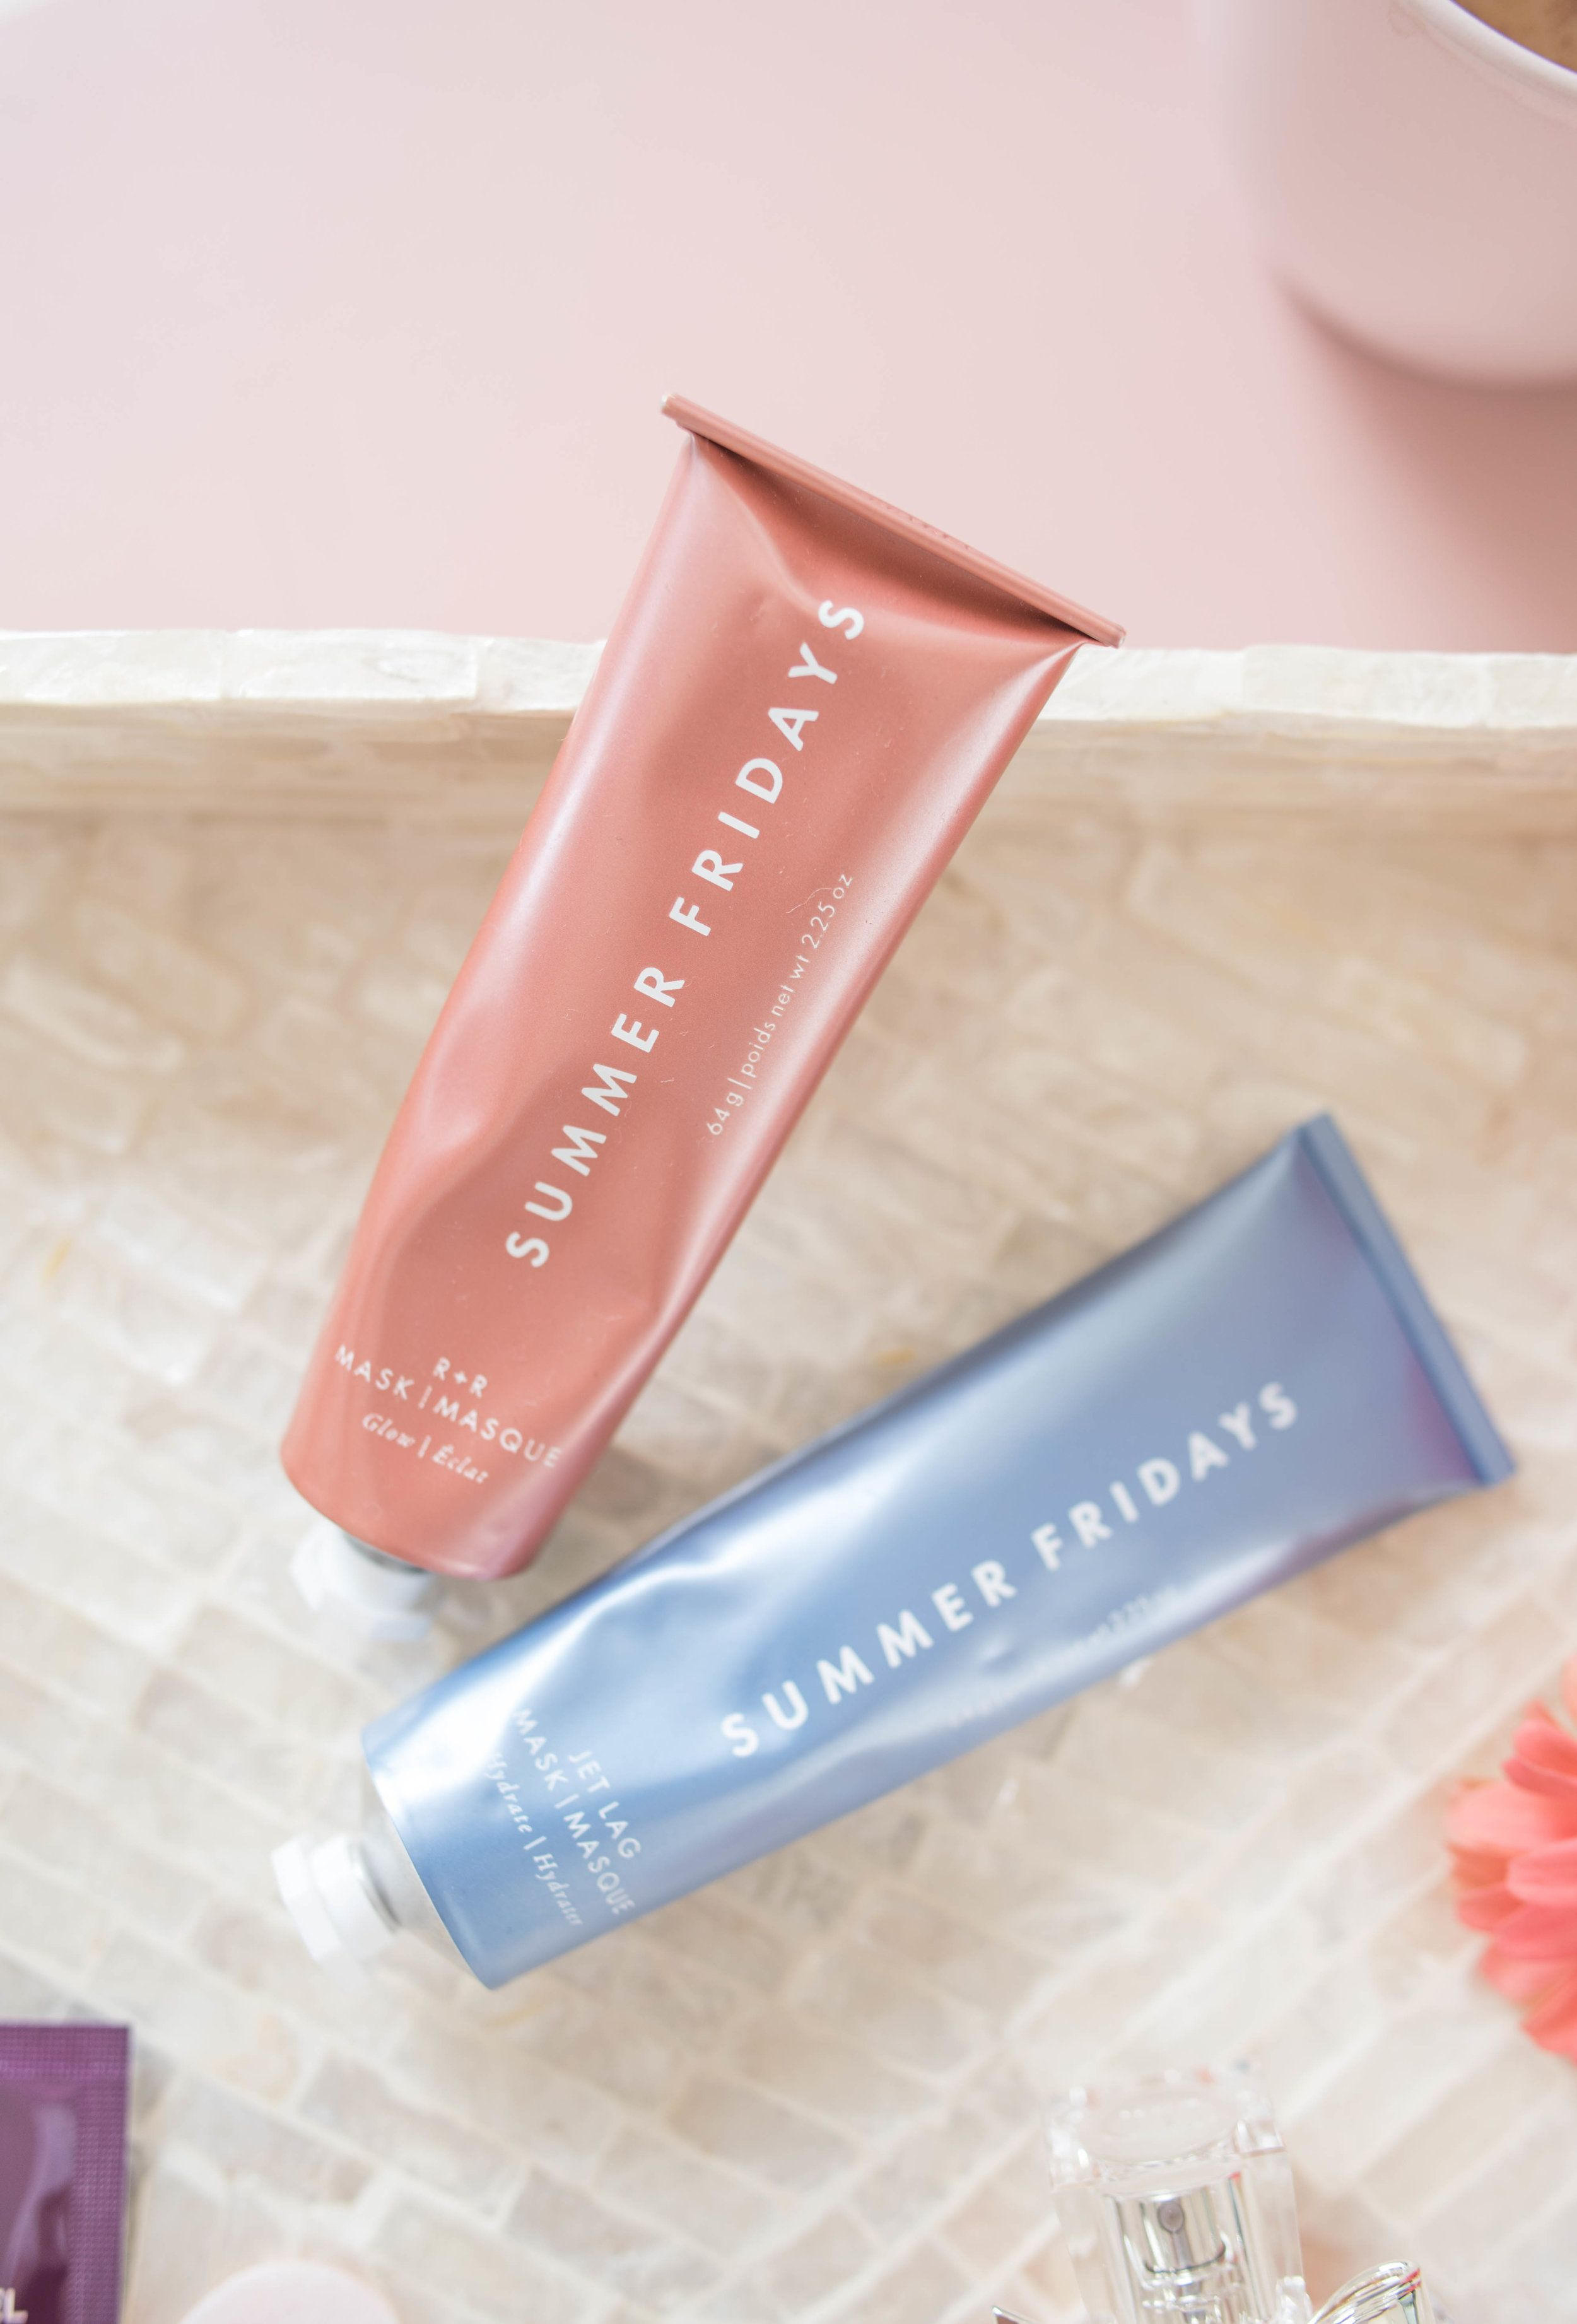 Every Beauty Product I Bought and Loved this Season #beautyessentials